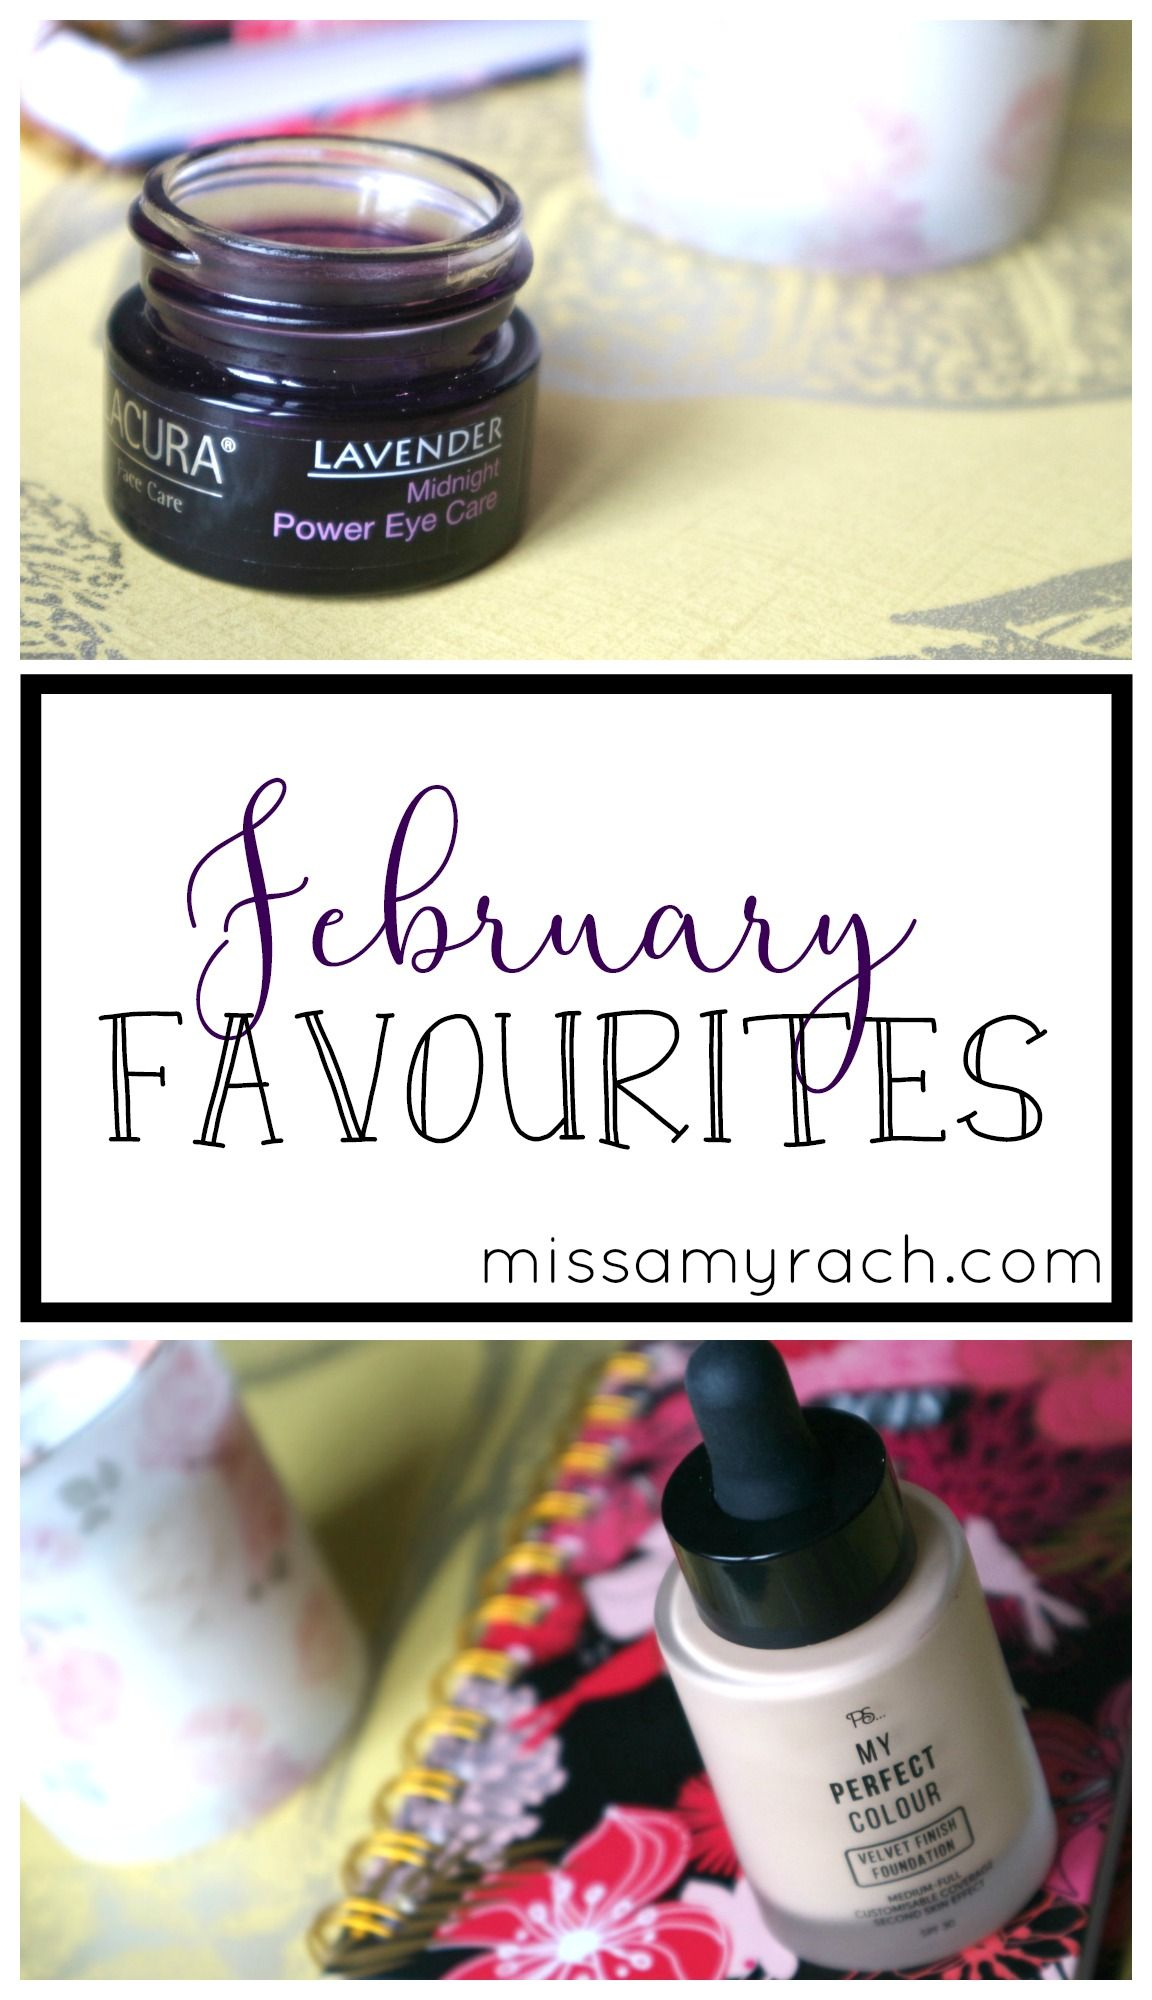 February Favourites 2018 Primark Makeup Hand Sanitizer